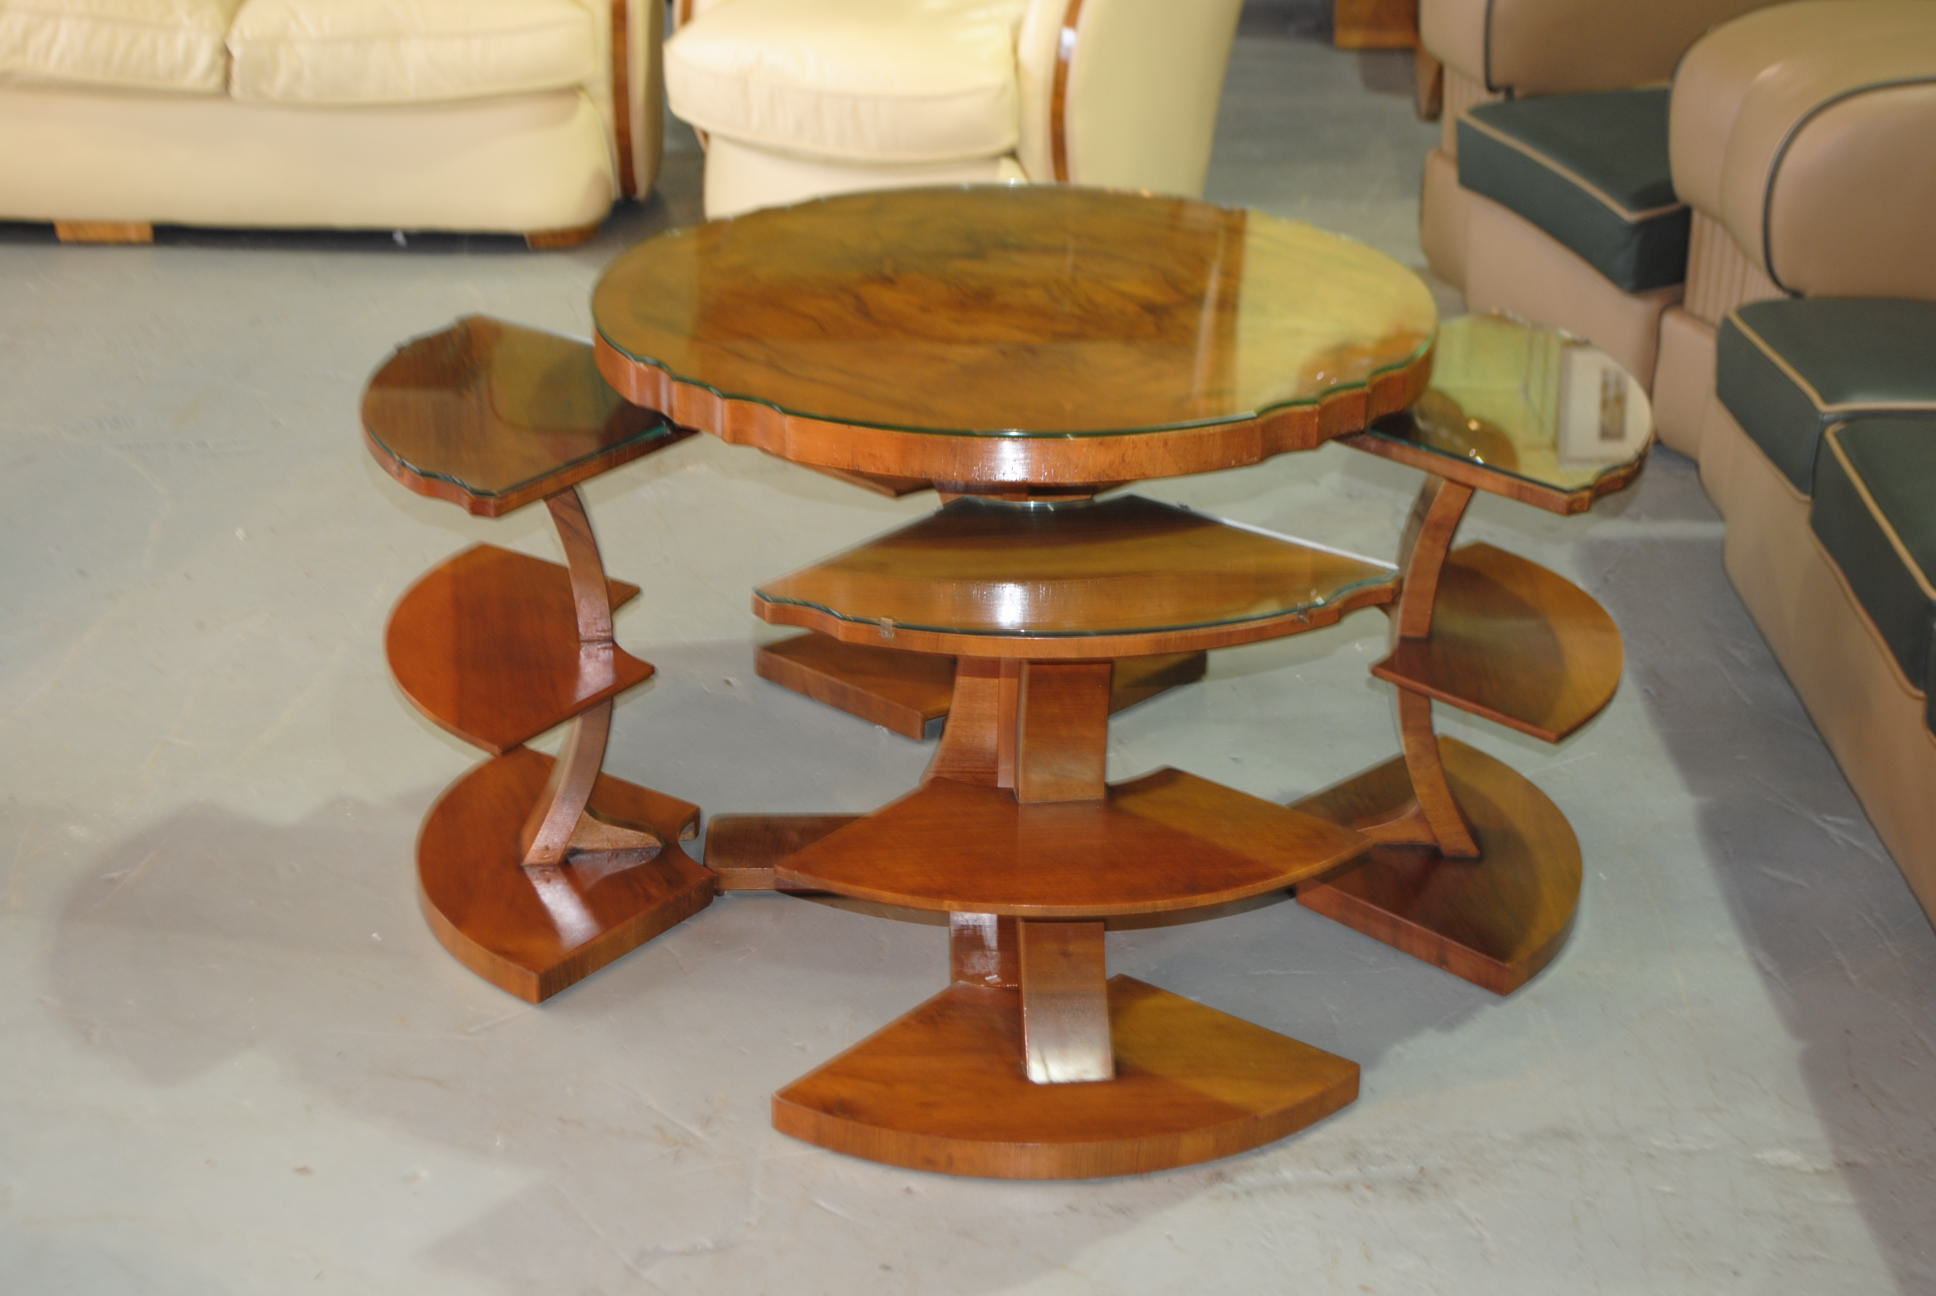 Art deco epstein airplane nest of tables cloud 9 art deco furniture sales - Epstein art deco furniture ...